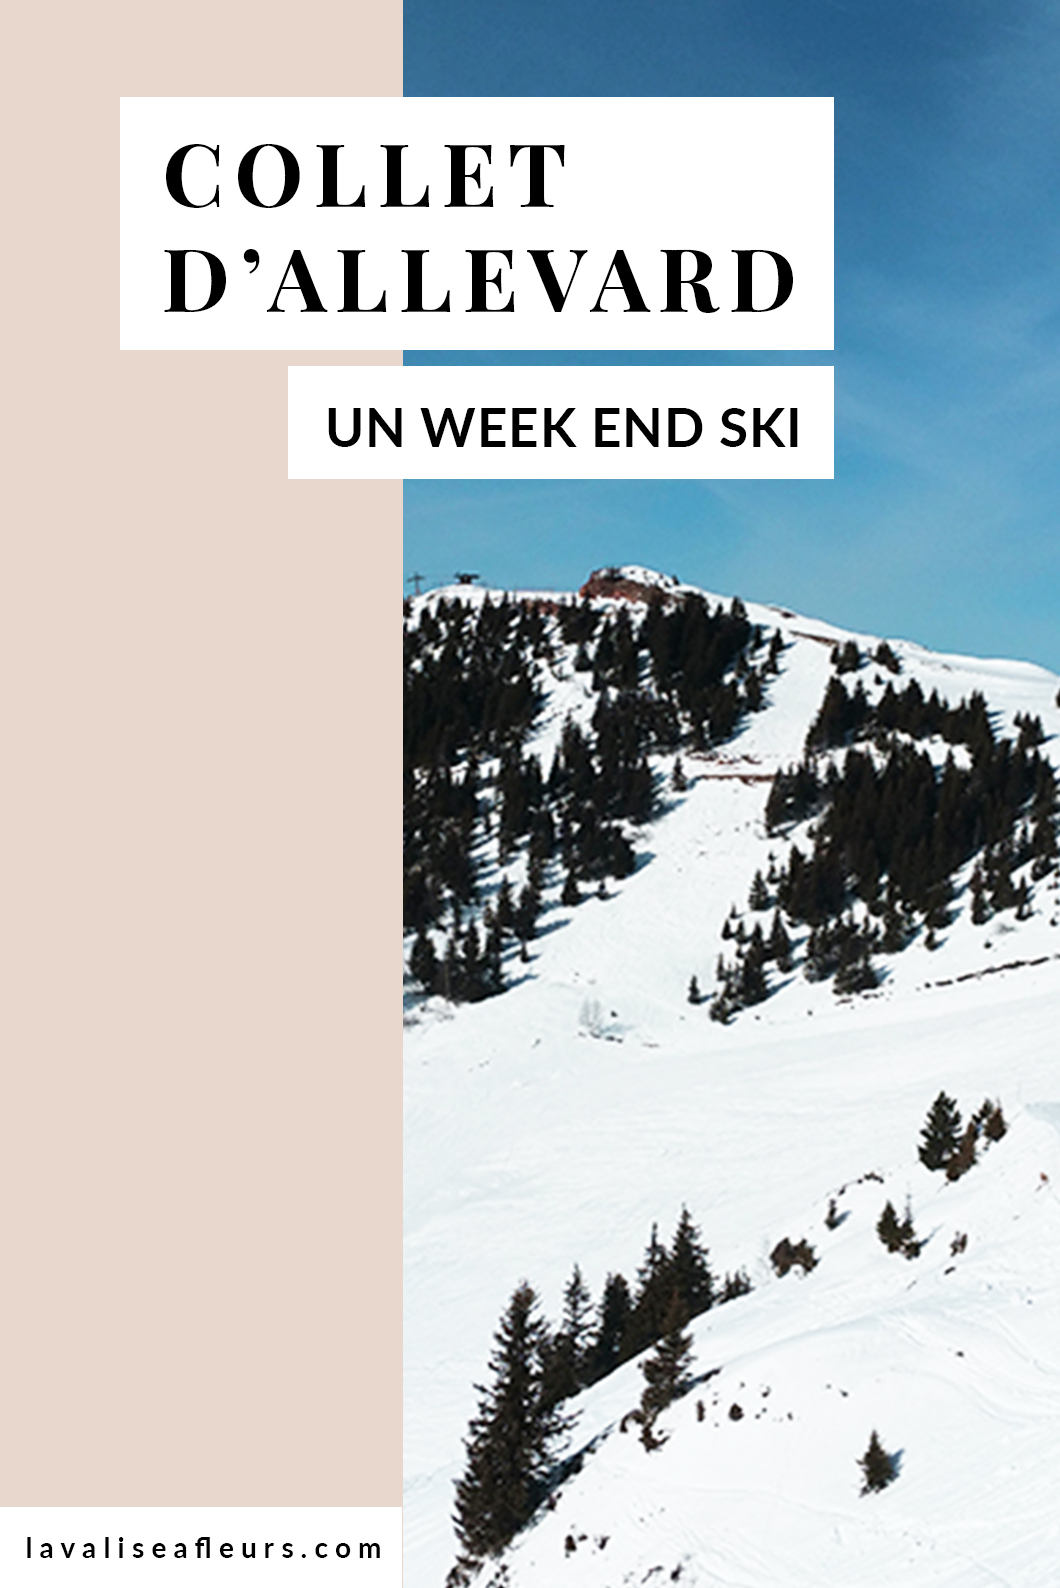 Un week end ski au Collet d'Allevard